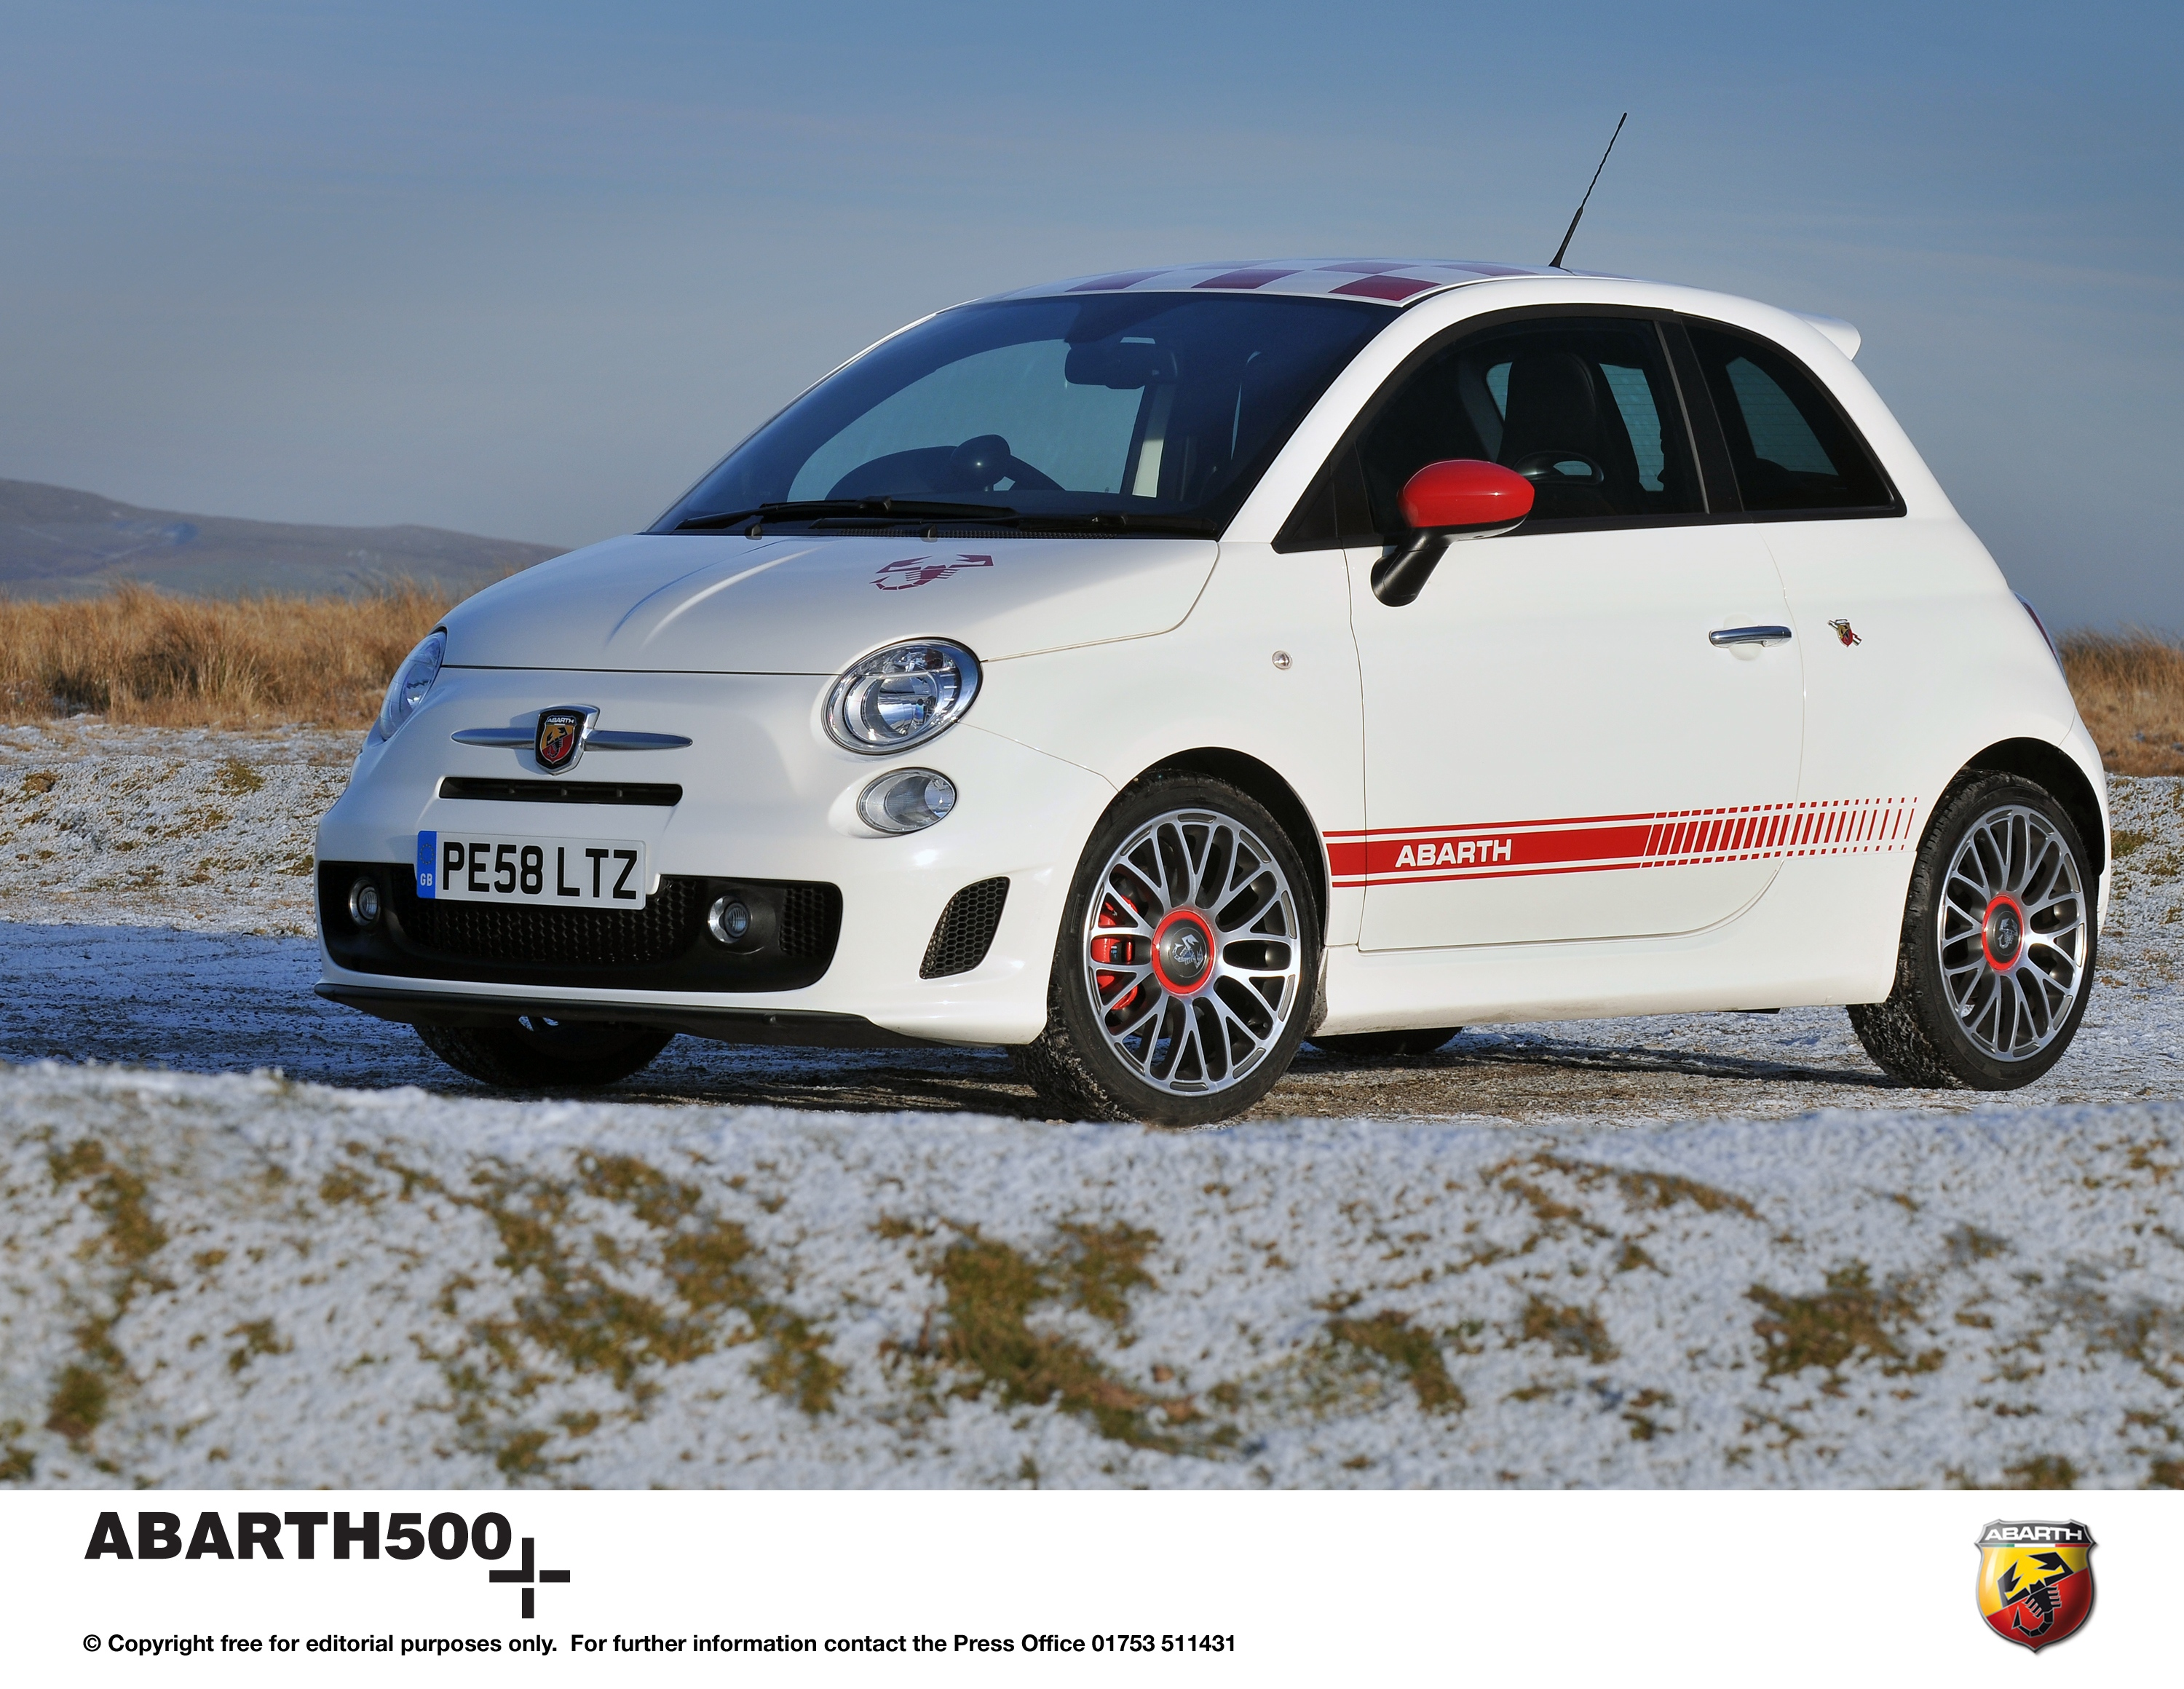 Millionth Fiat 500 Rolls Off The Production Line further 181261 2nd Attempt My Lovely Funk White 500 A together with Fiat 500 Couleur Funk White additionally Topic83 25 further 2. on fiat 500 funk white